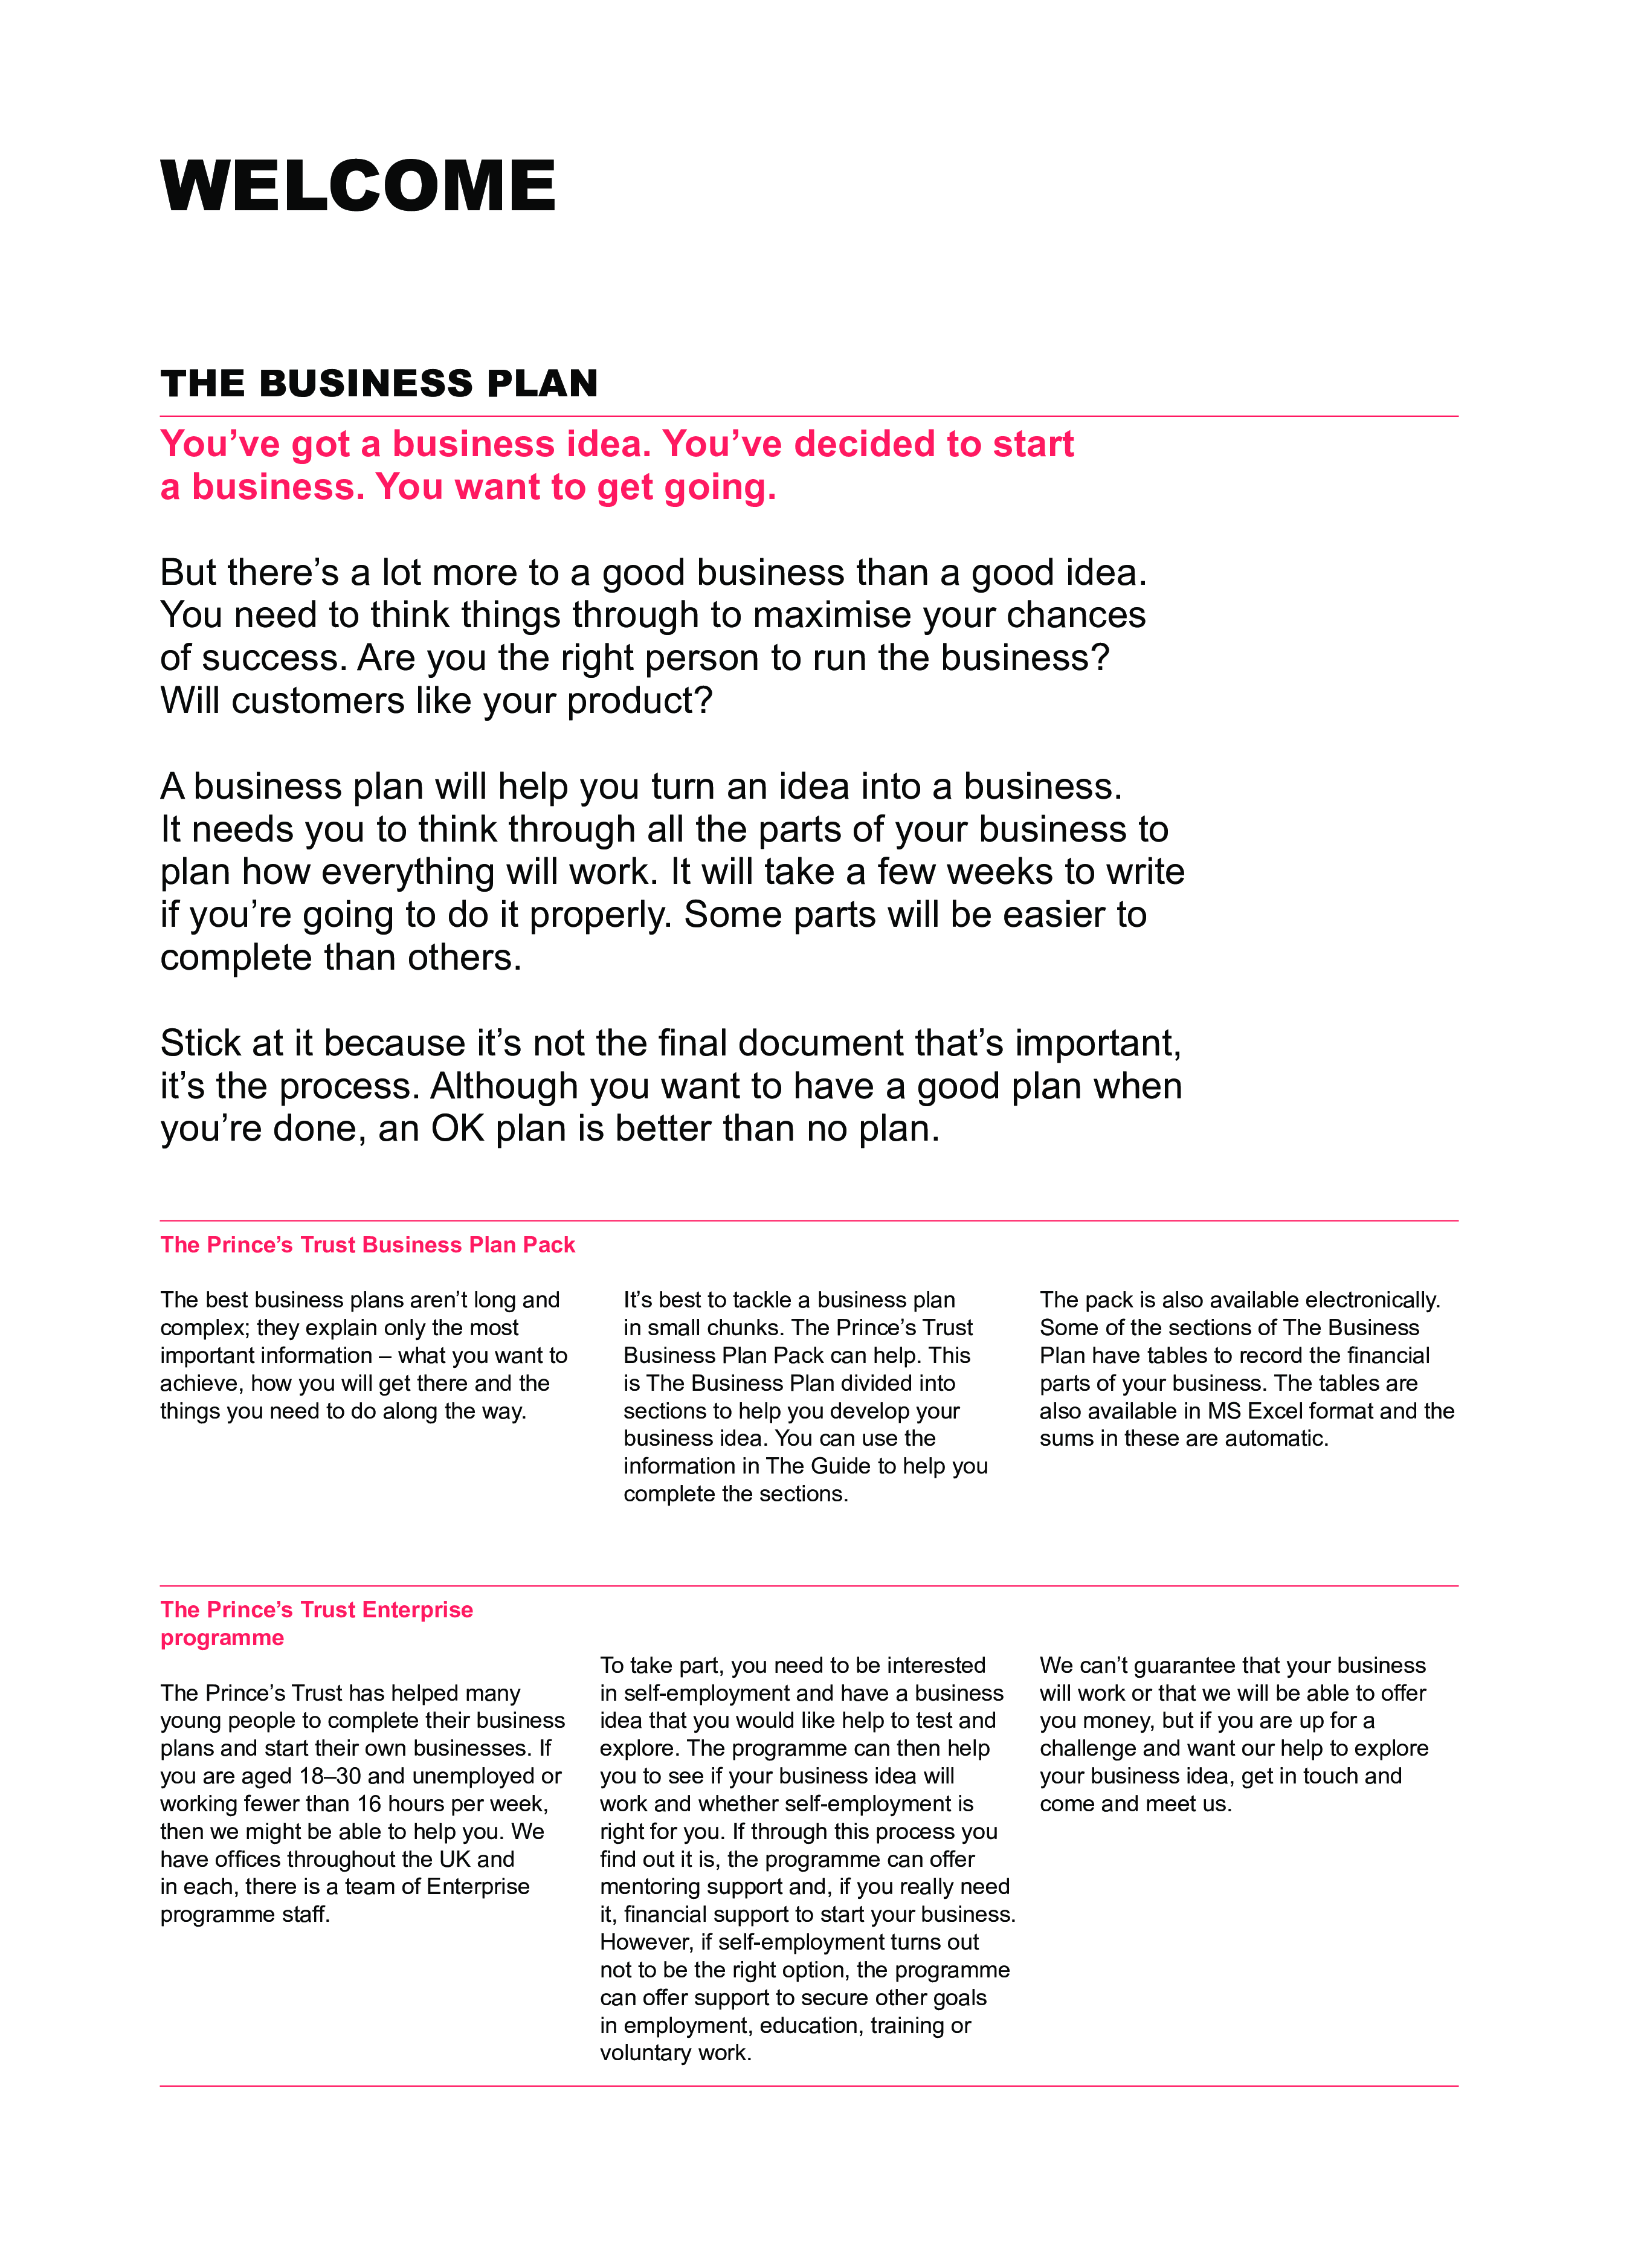 Free simple business plan template templates at simple business plan template cheaphphosting Image collections